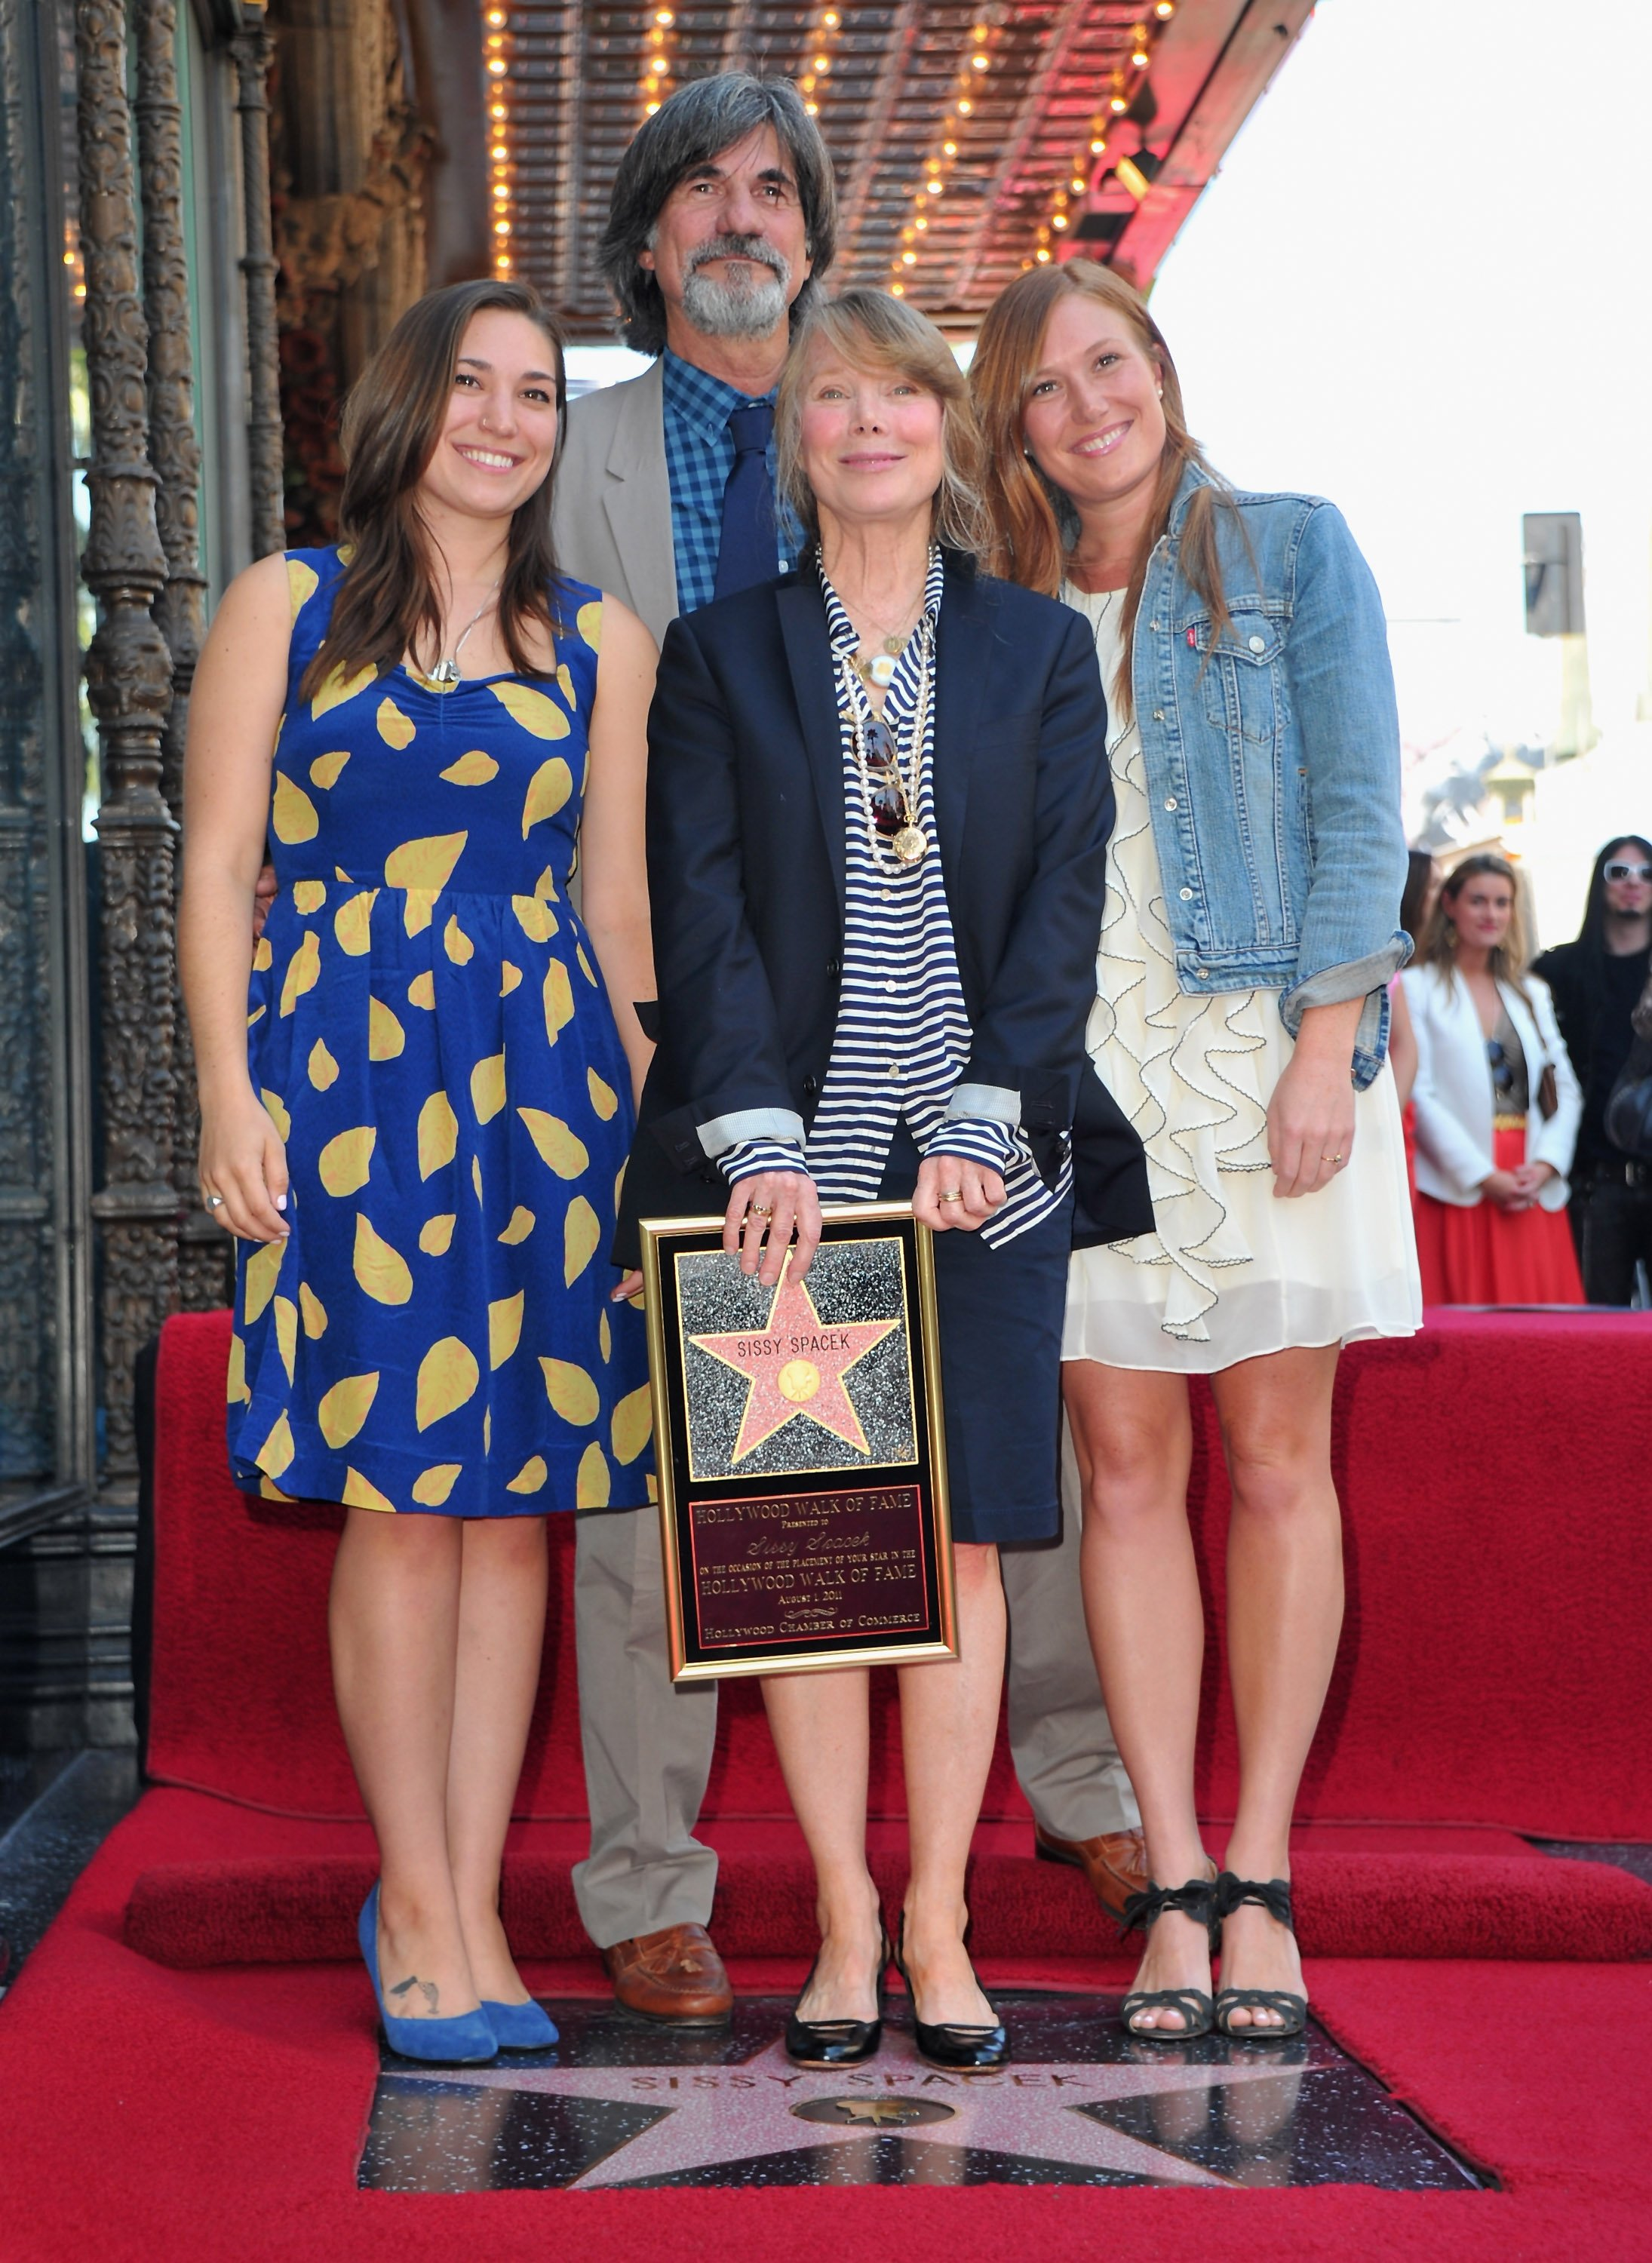 Madison Fisk, production designer Jack Fisk, actress Sissy Spacek and actress Schuyler Fisk attend the ceremony Honoring Sissy Spacek with the 2,443rd star on the Hollywood Walk of Fame in front of the El Capitan Theatre on August 1, 2011, in Hollywood, California. | Source: Getty Images.